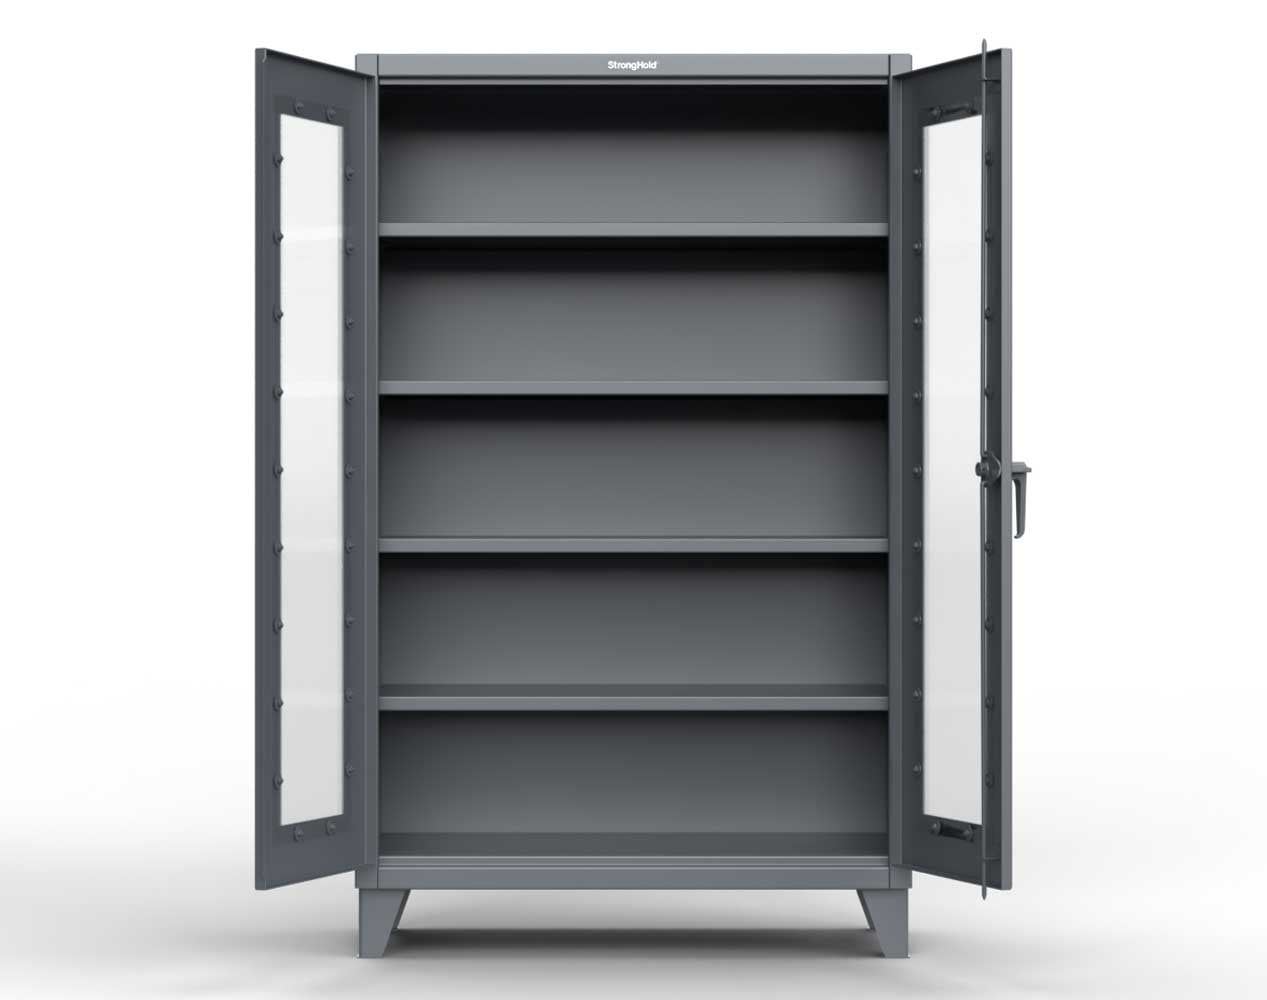 Extreme Duty 12 GA Scratch Resistant Clearview Cabinet with 3 Shelves – 48 In. W x 24 In. D x 66 In. H